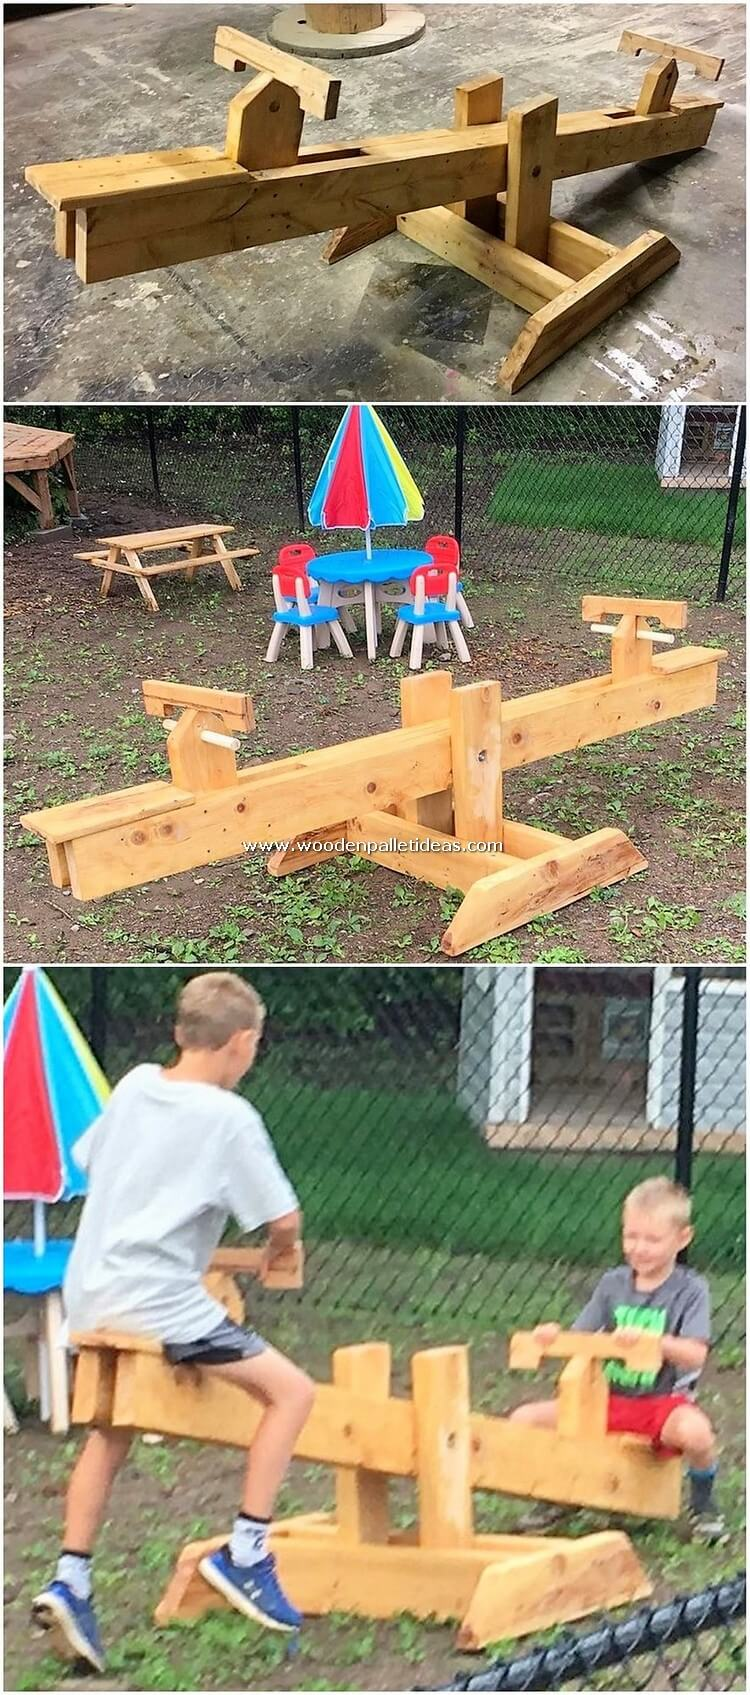 Pallet-Seesaw-Creation-for-Kids